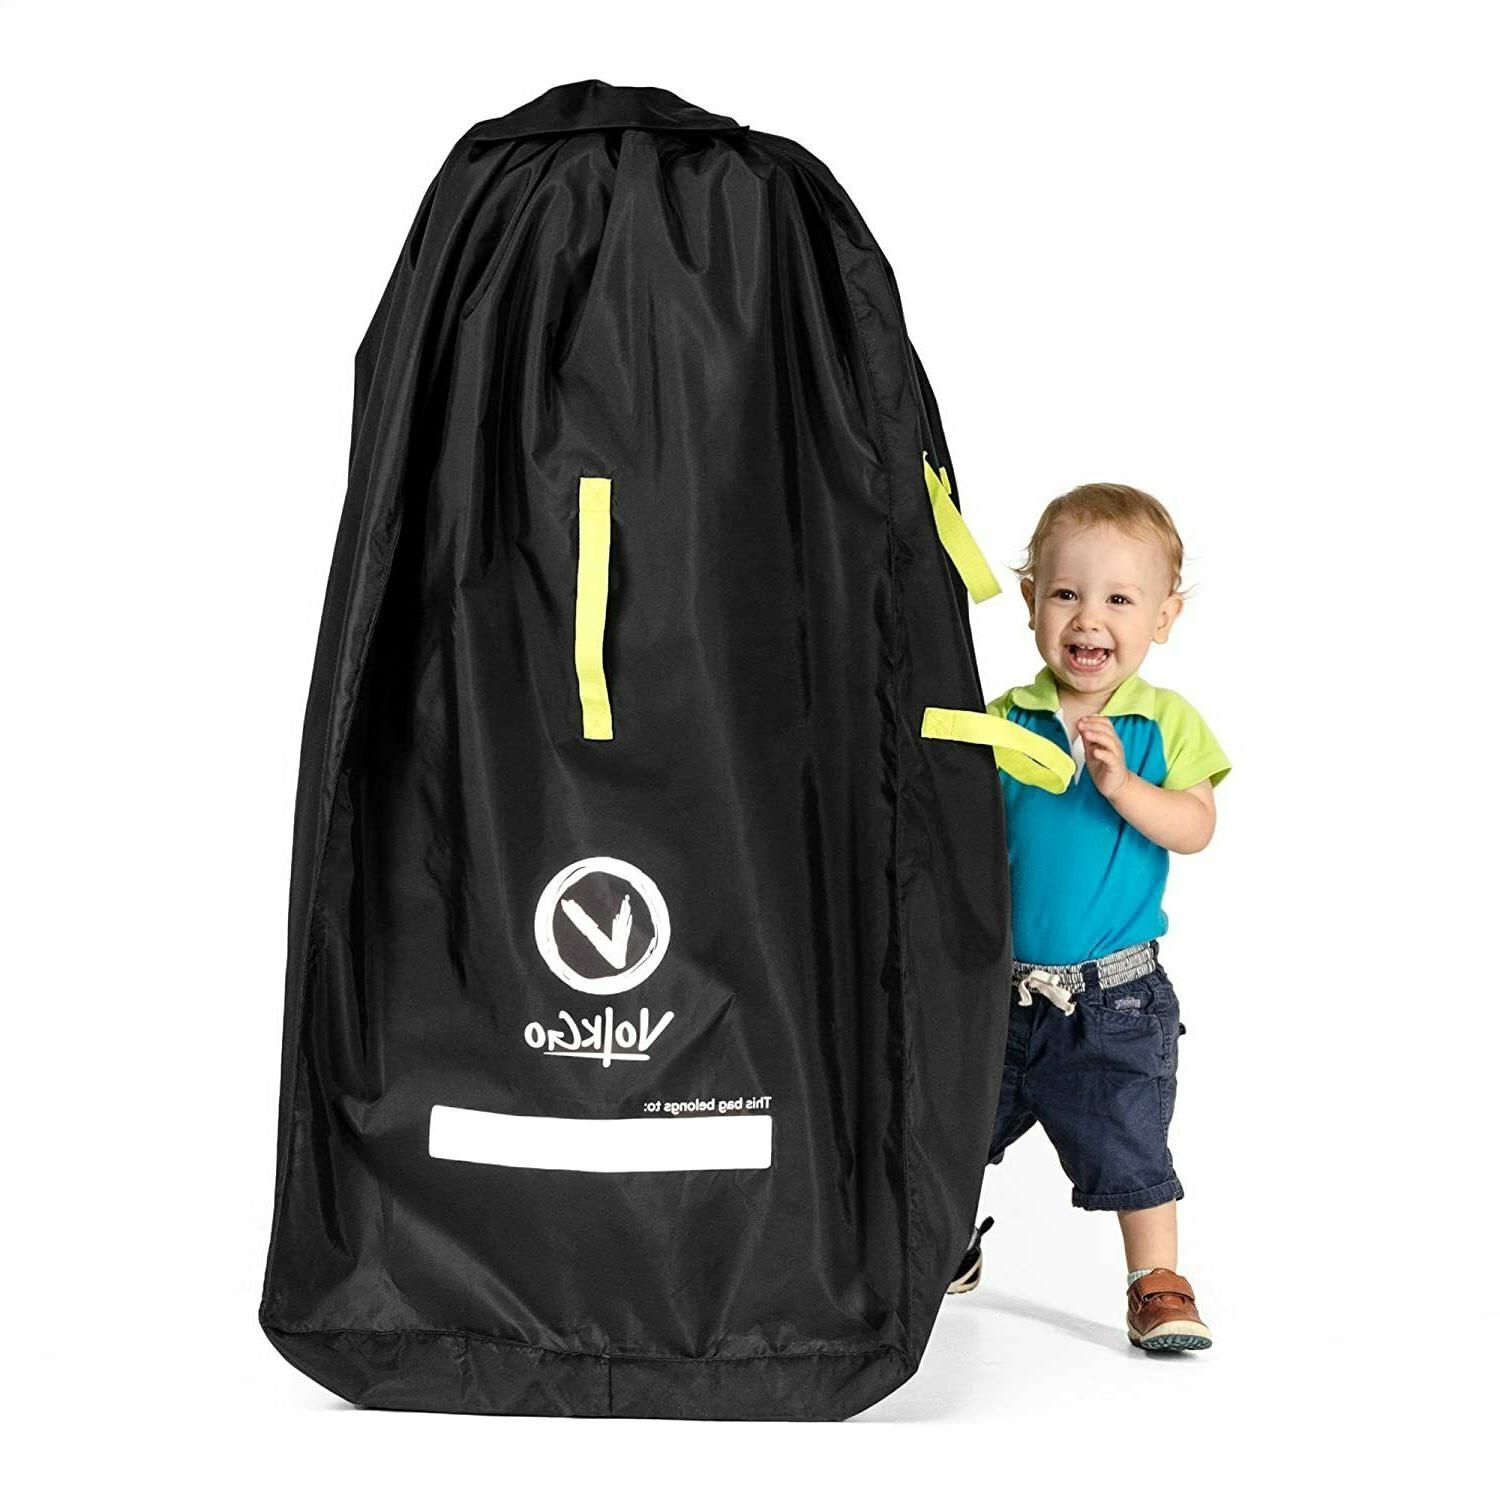 durable stroller bag for airplane standard or